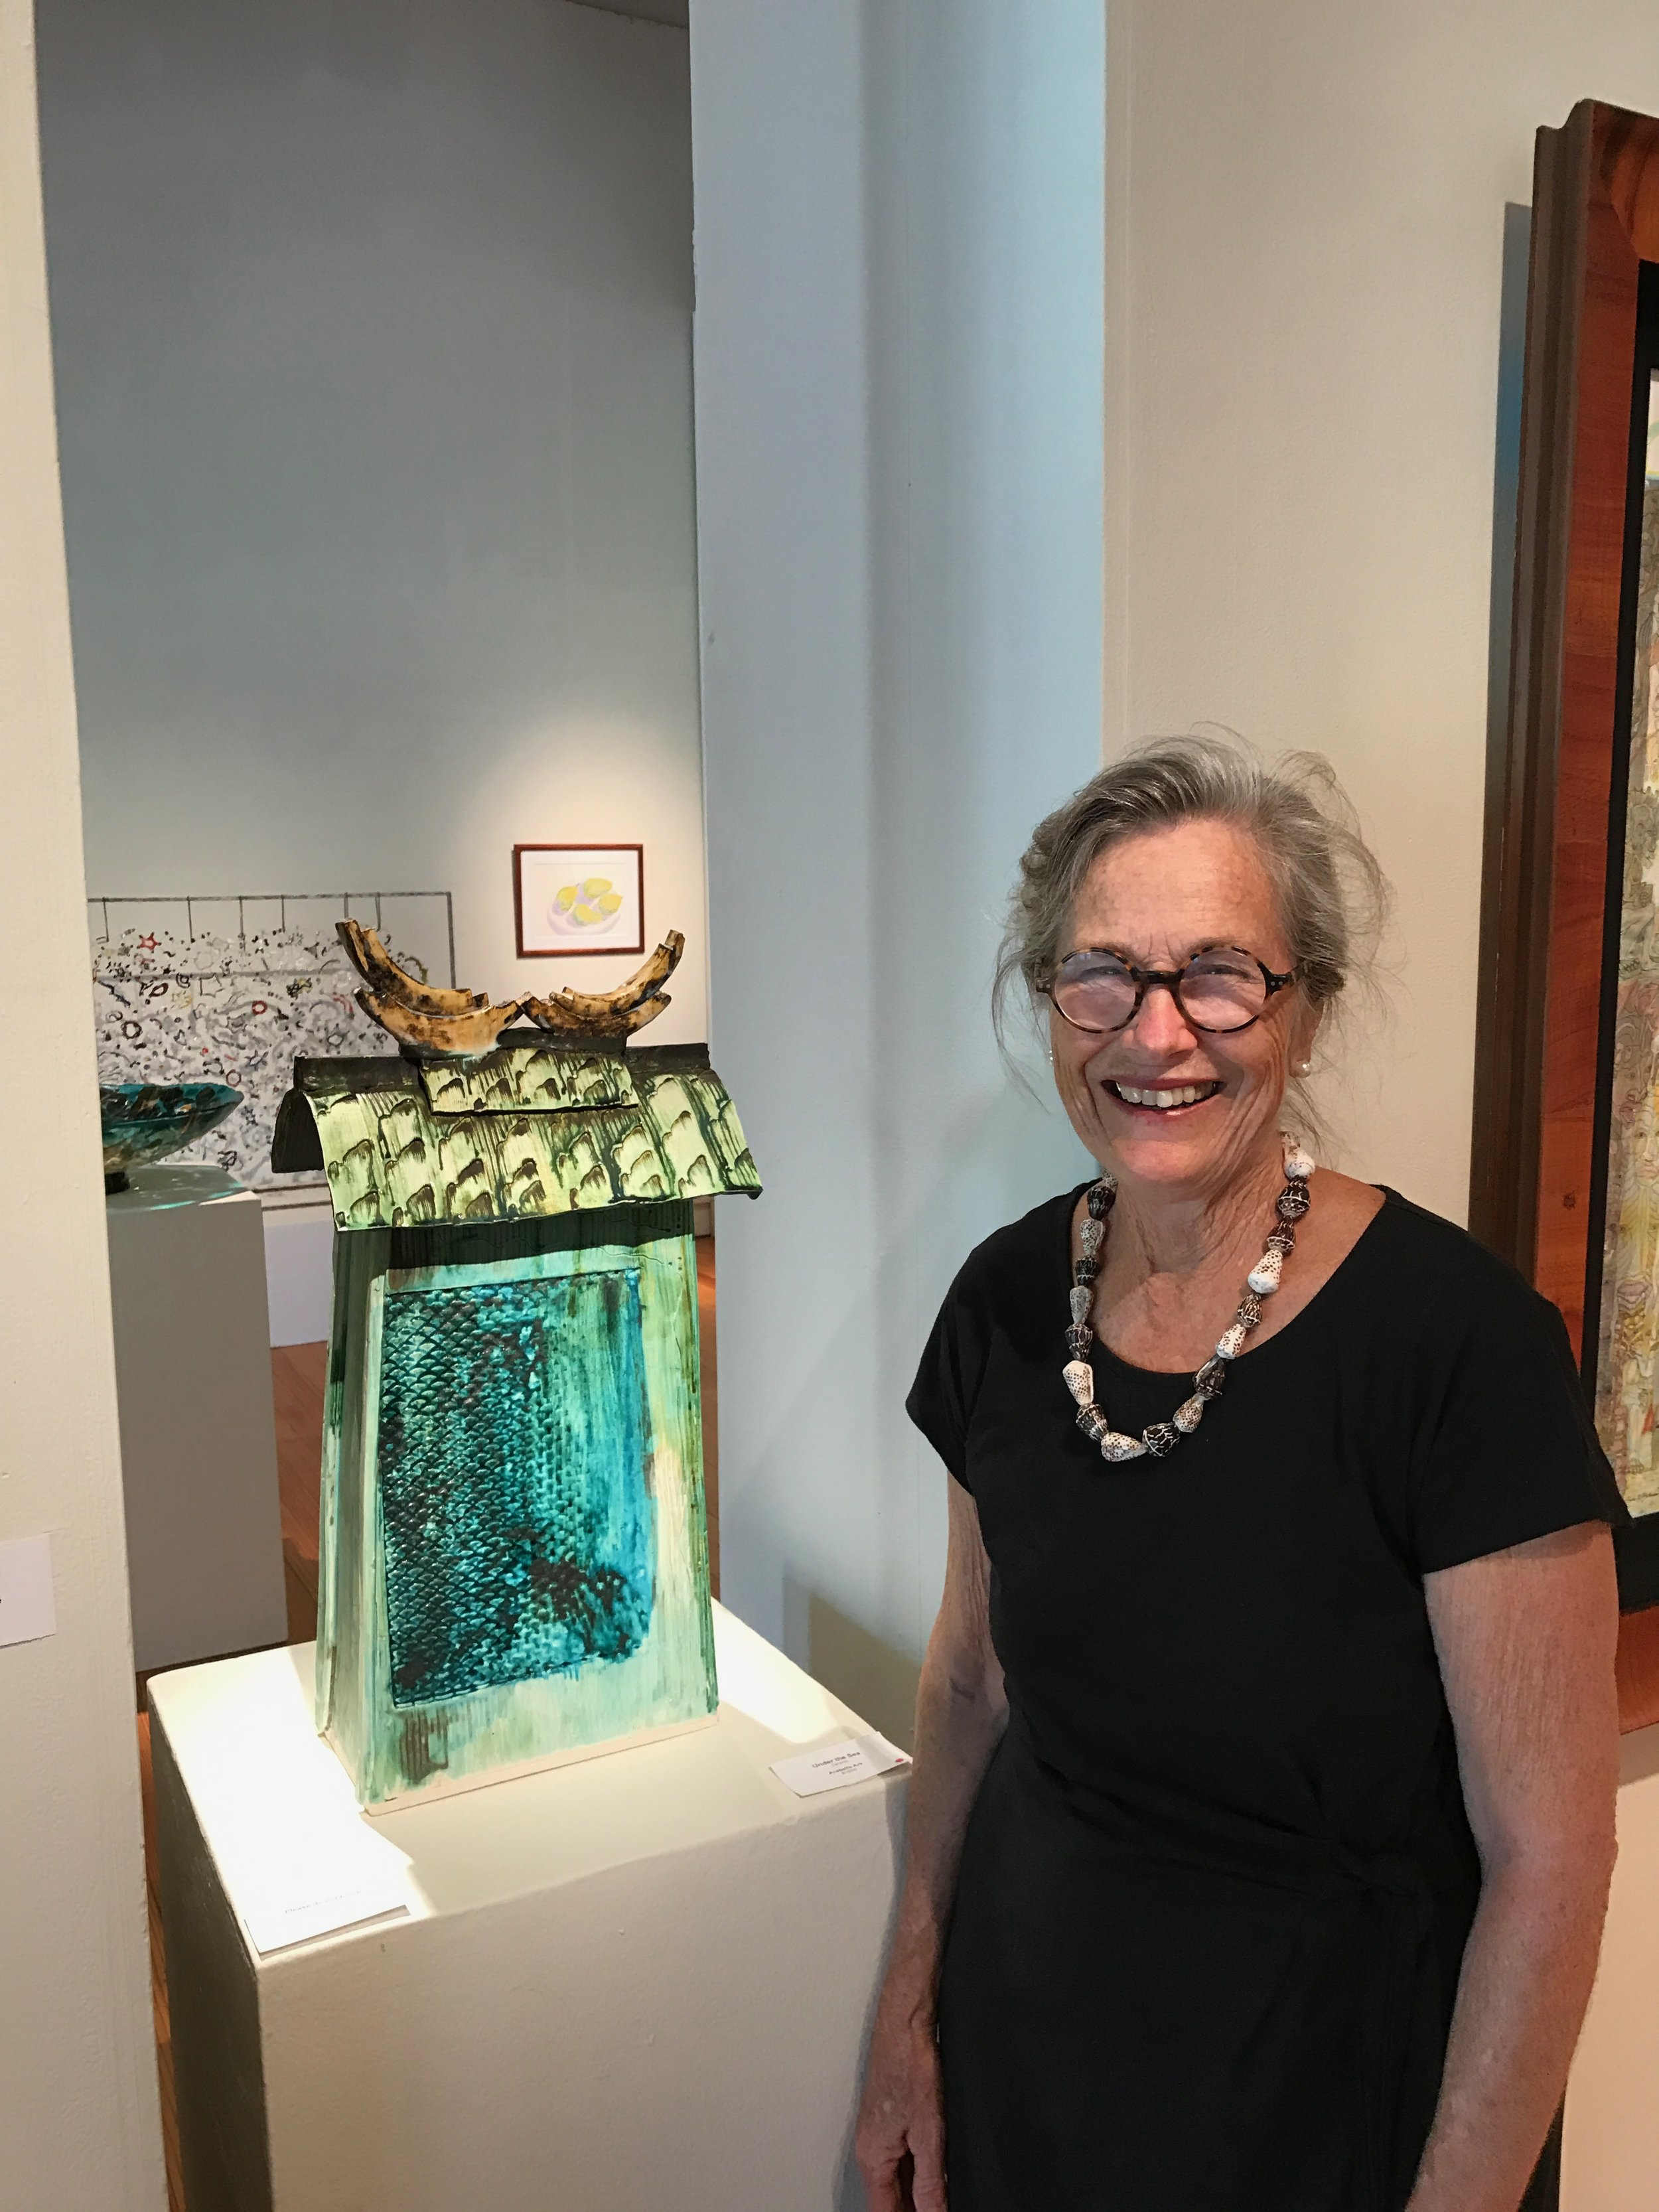 Maui Crafts Guild member AraBella Ark at the opening of the new ArtMAUI 2107next to her entry that was accepted and sold.